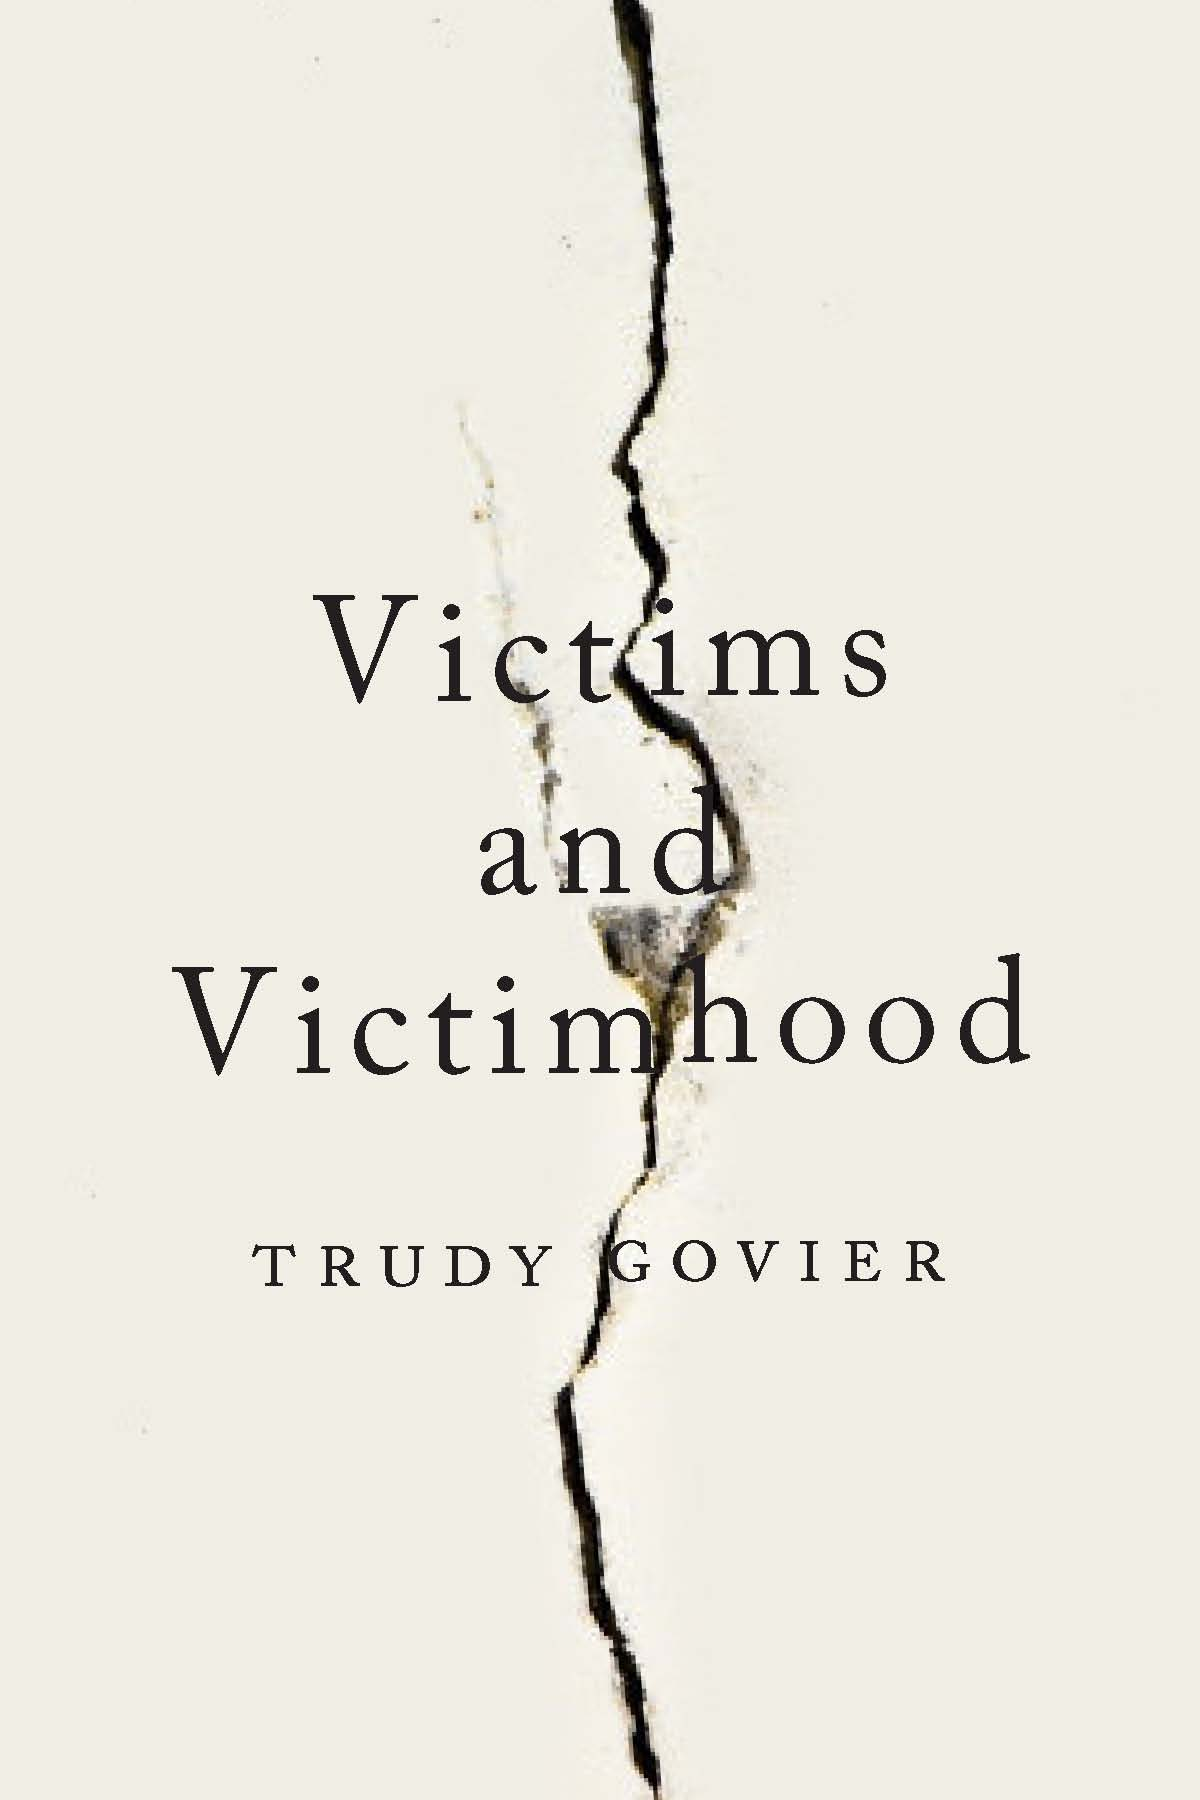 Victims and Victimhood: Trudy Govier in Conversation